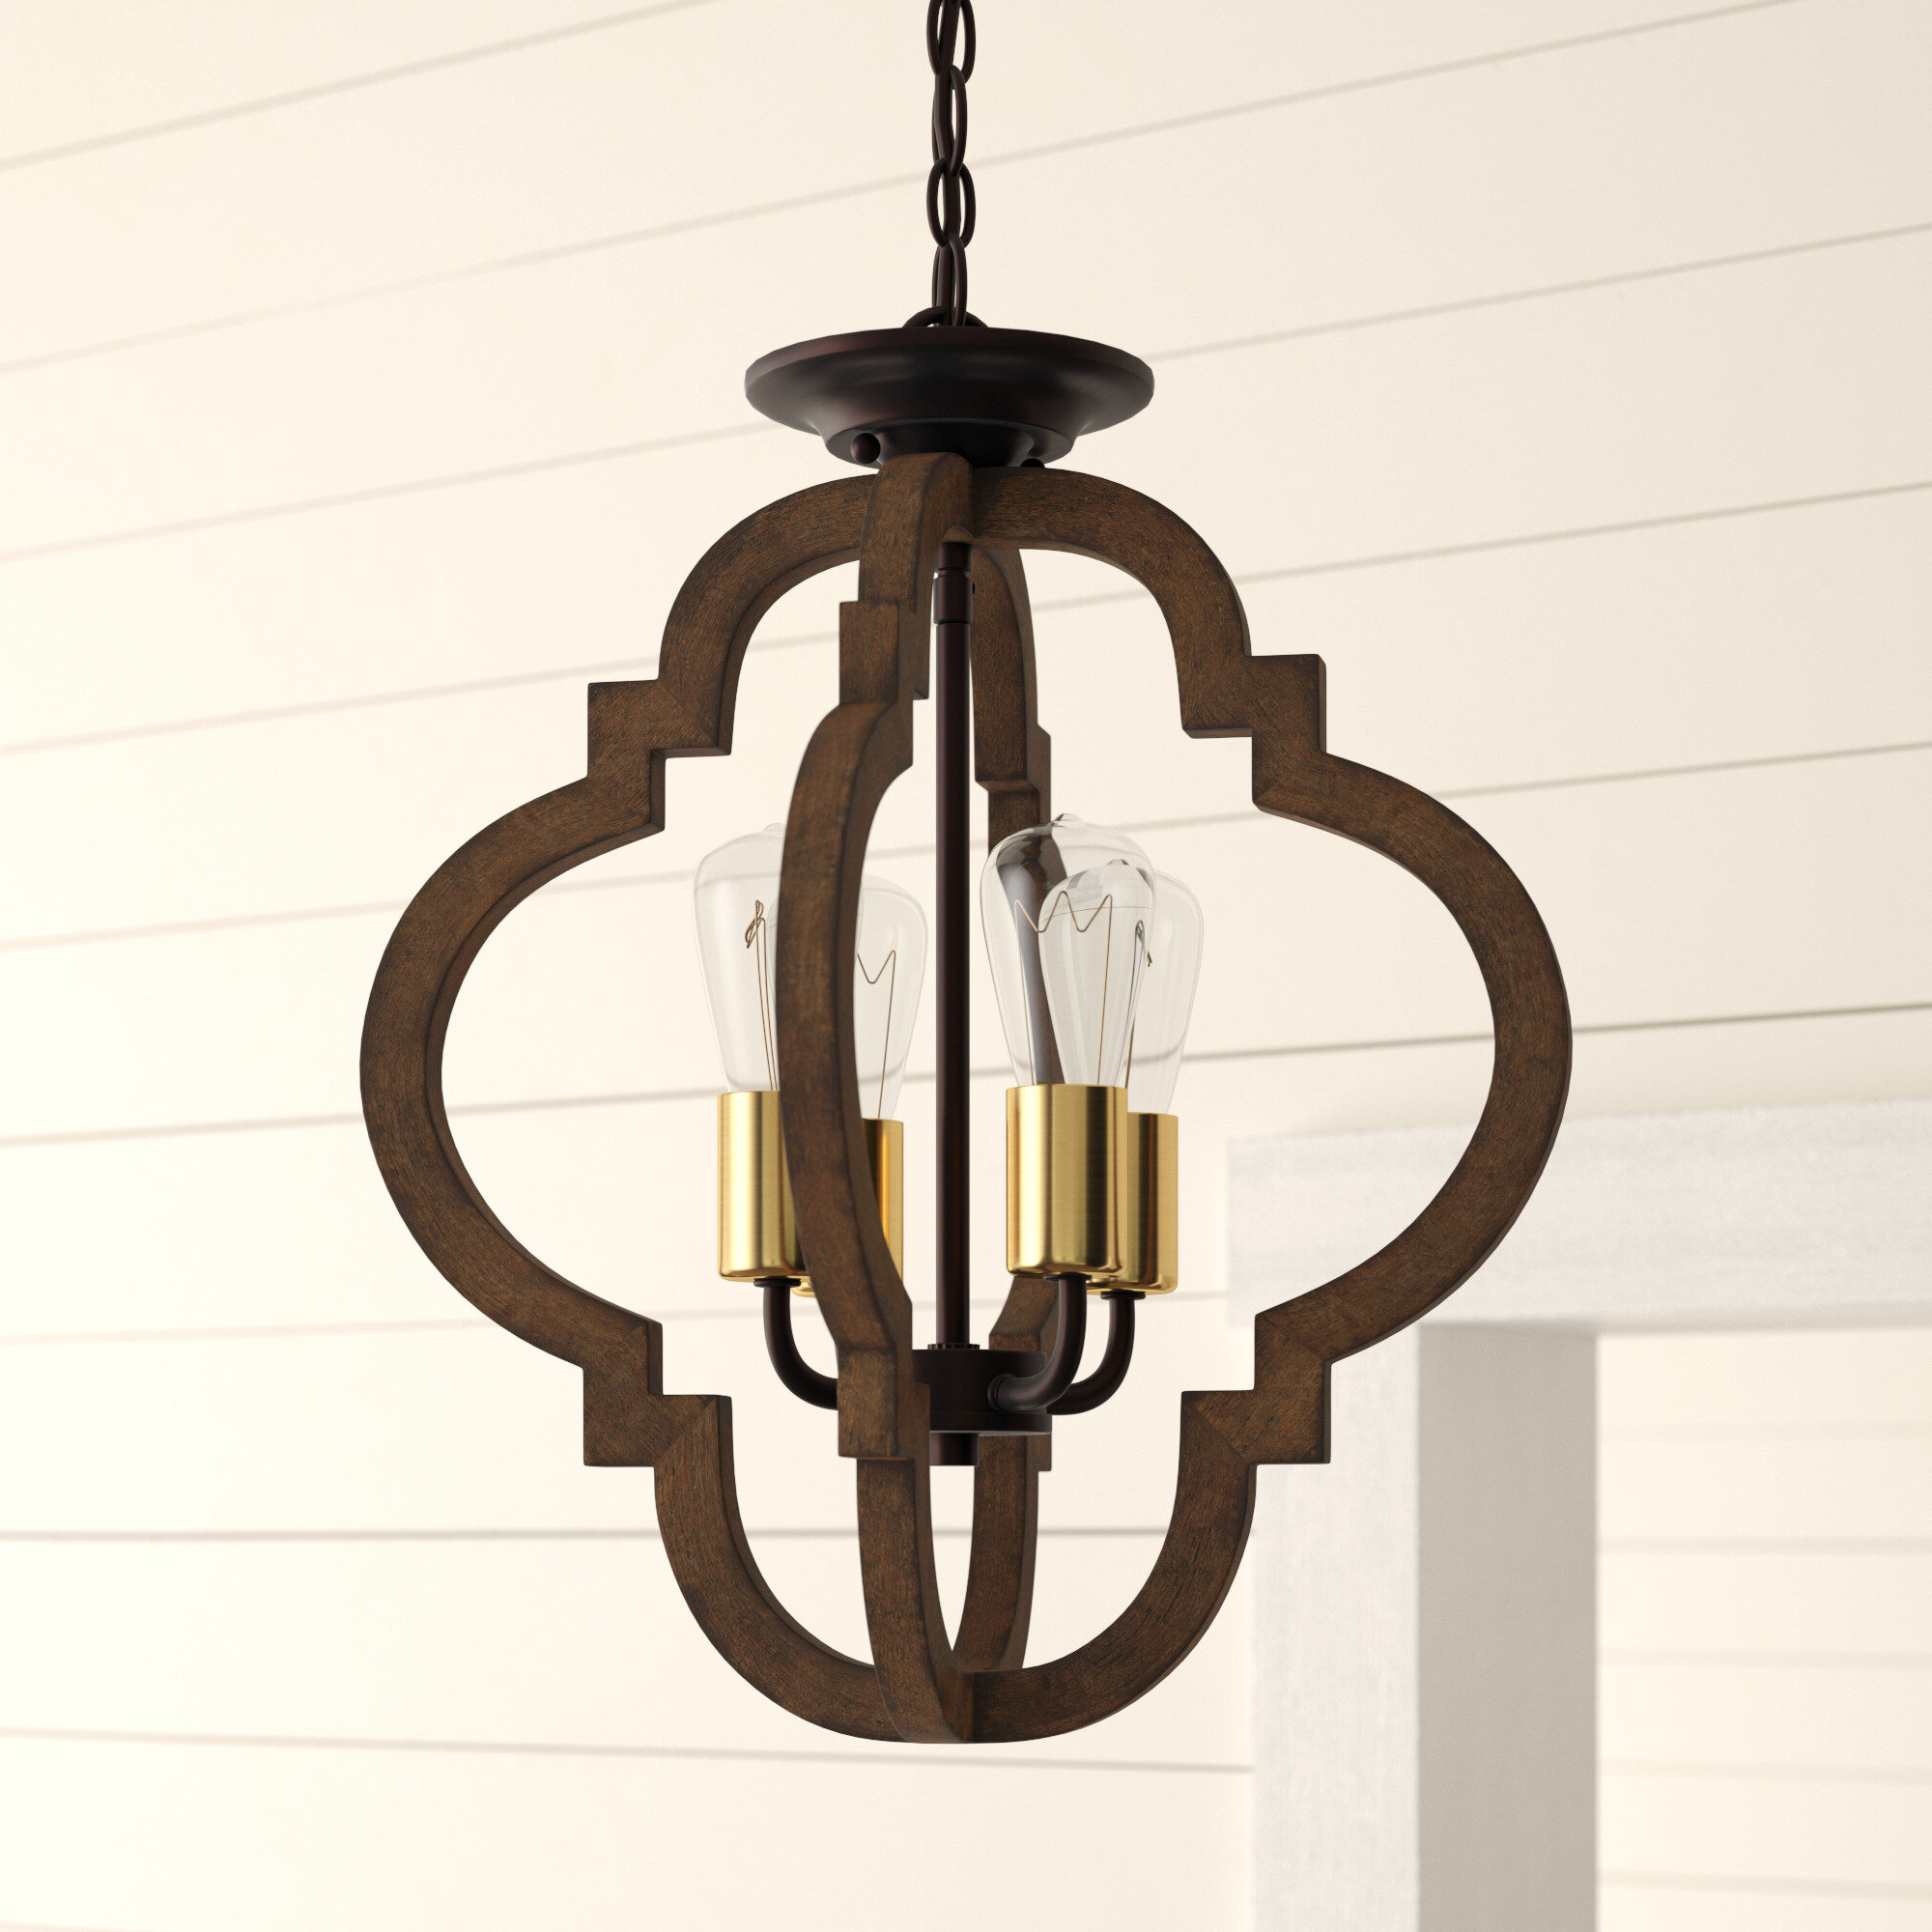 Preferred Lynn 6 Light Geometric Chandeliers Regarding Kaycee 4 Light Geometric Chandelier (View 6 of 25)